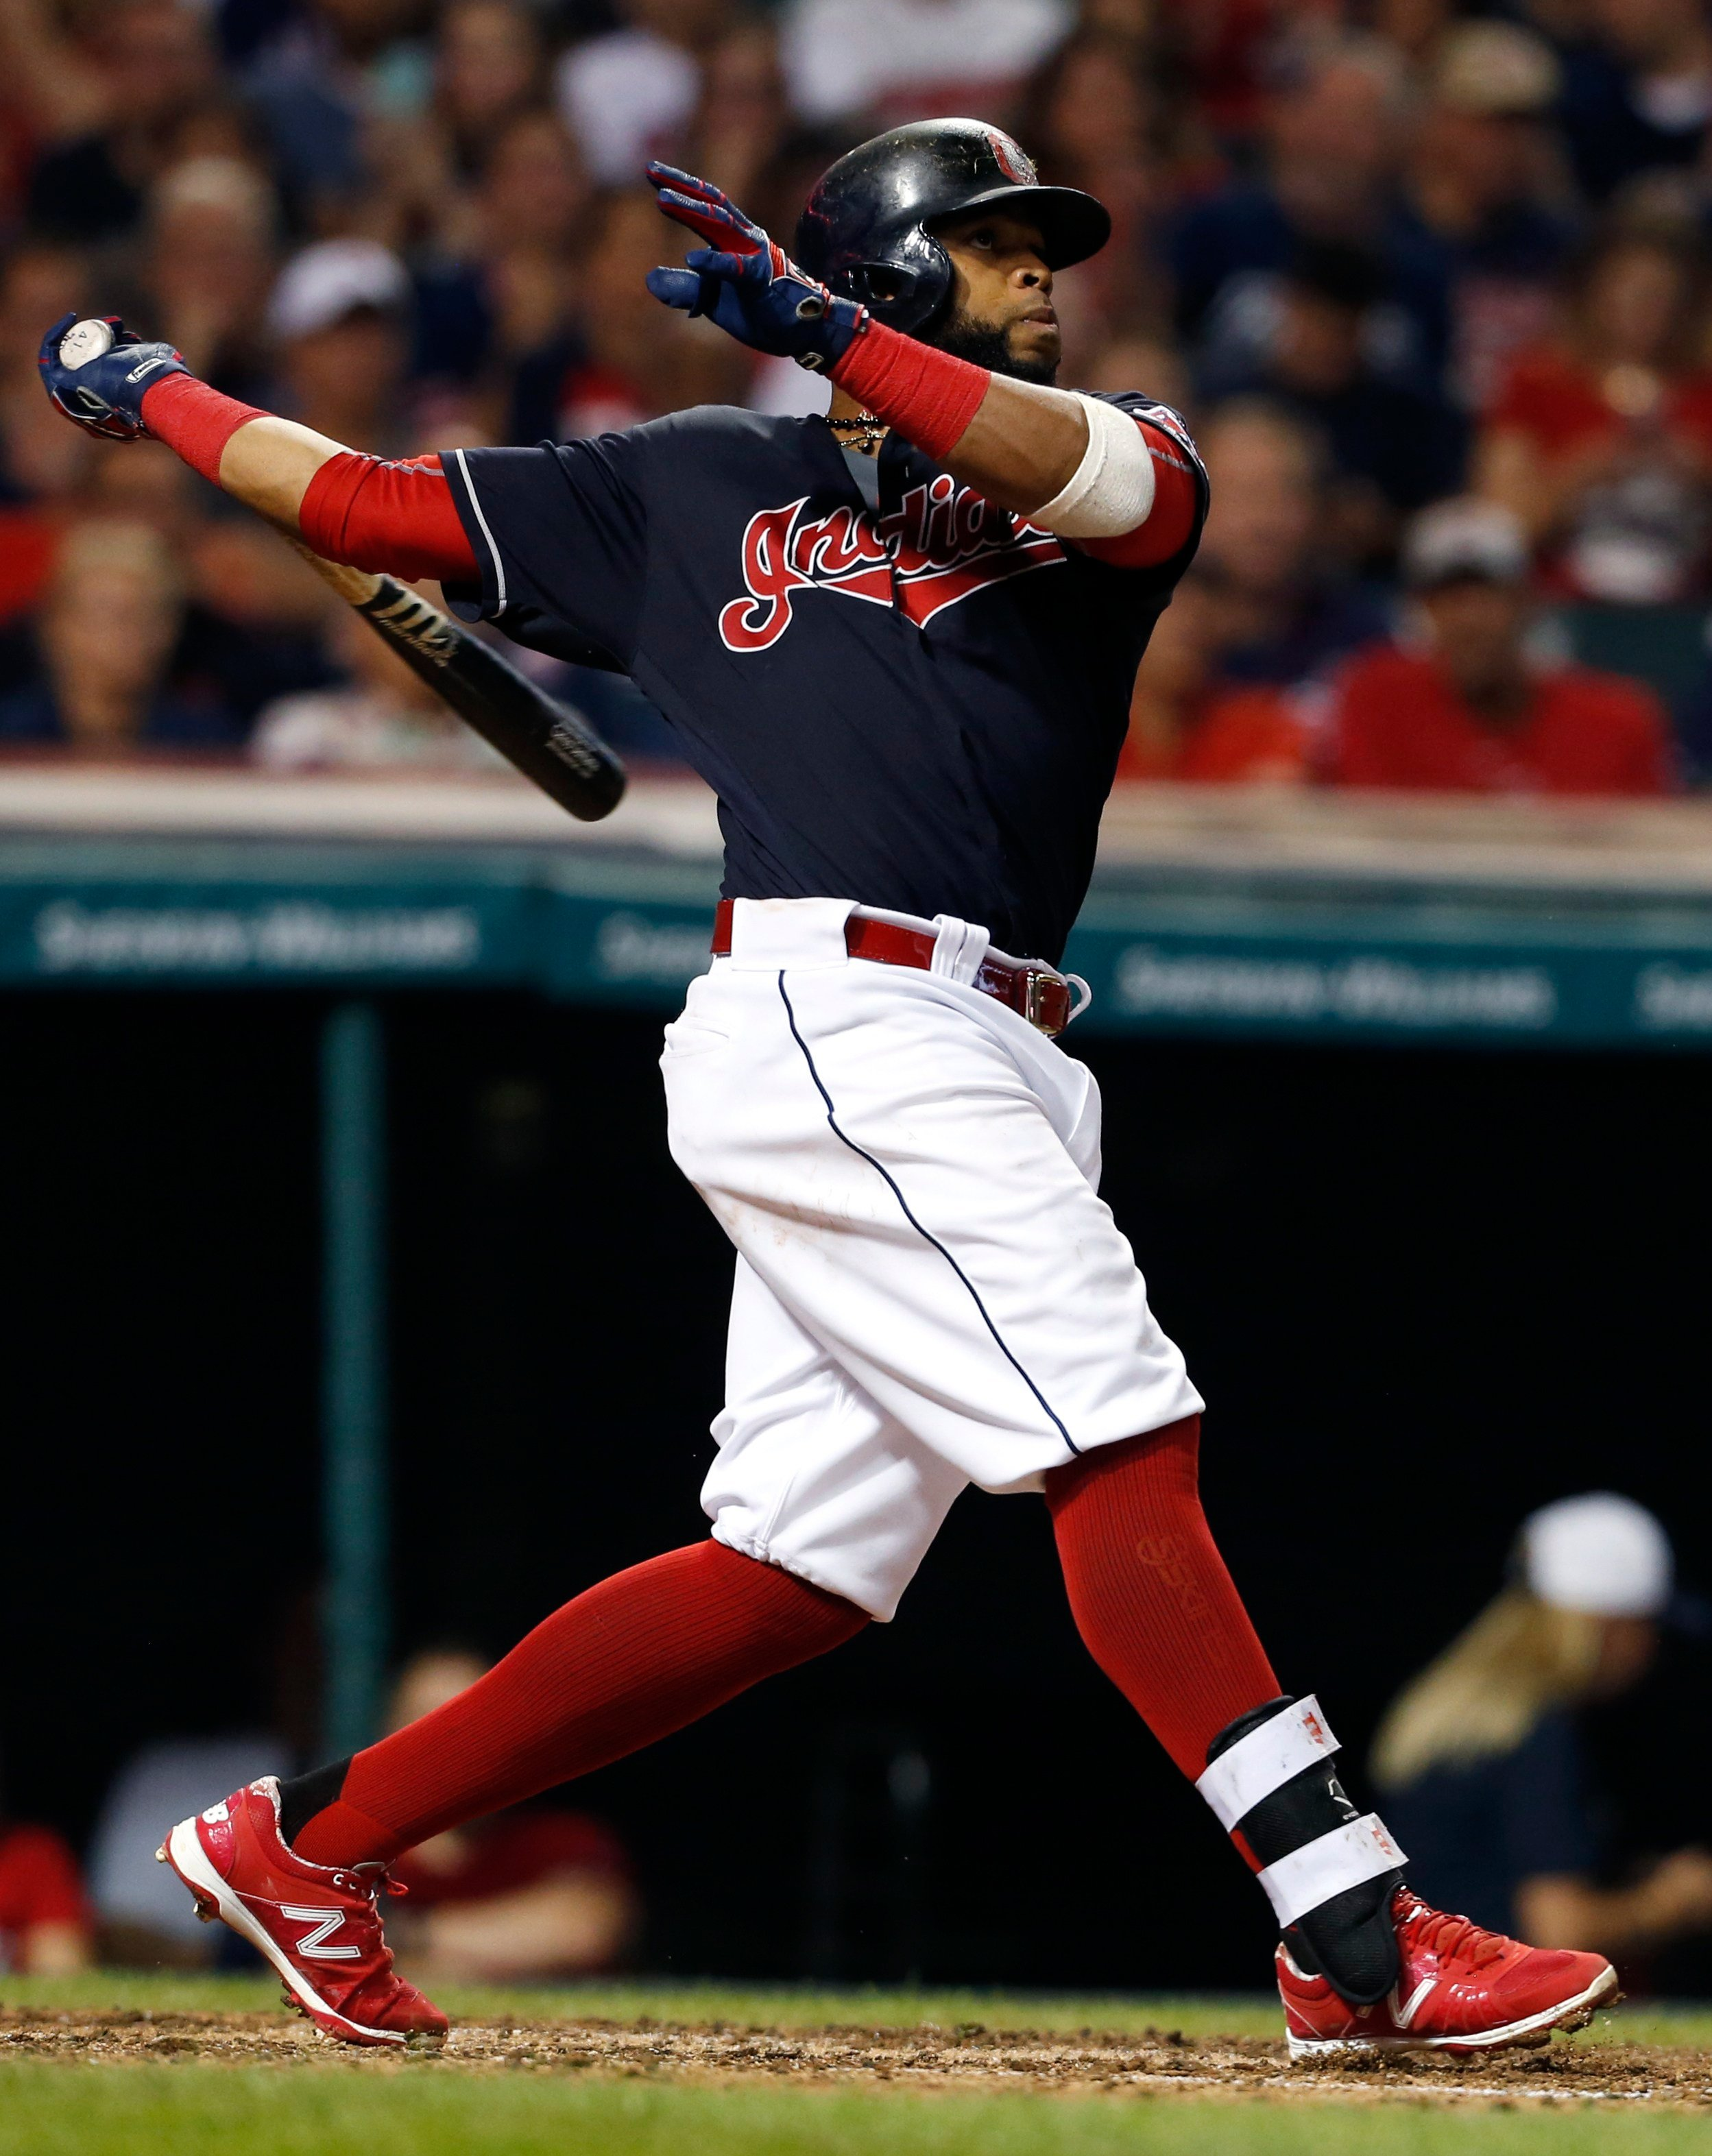 Indians move closer to AL Central crown